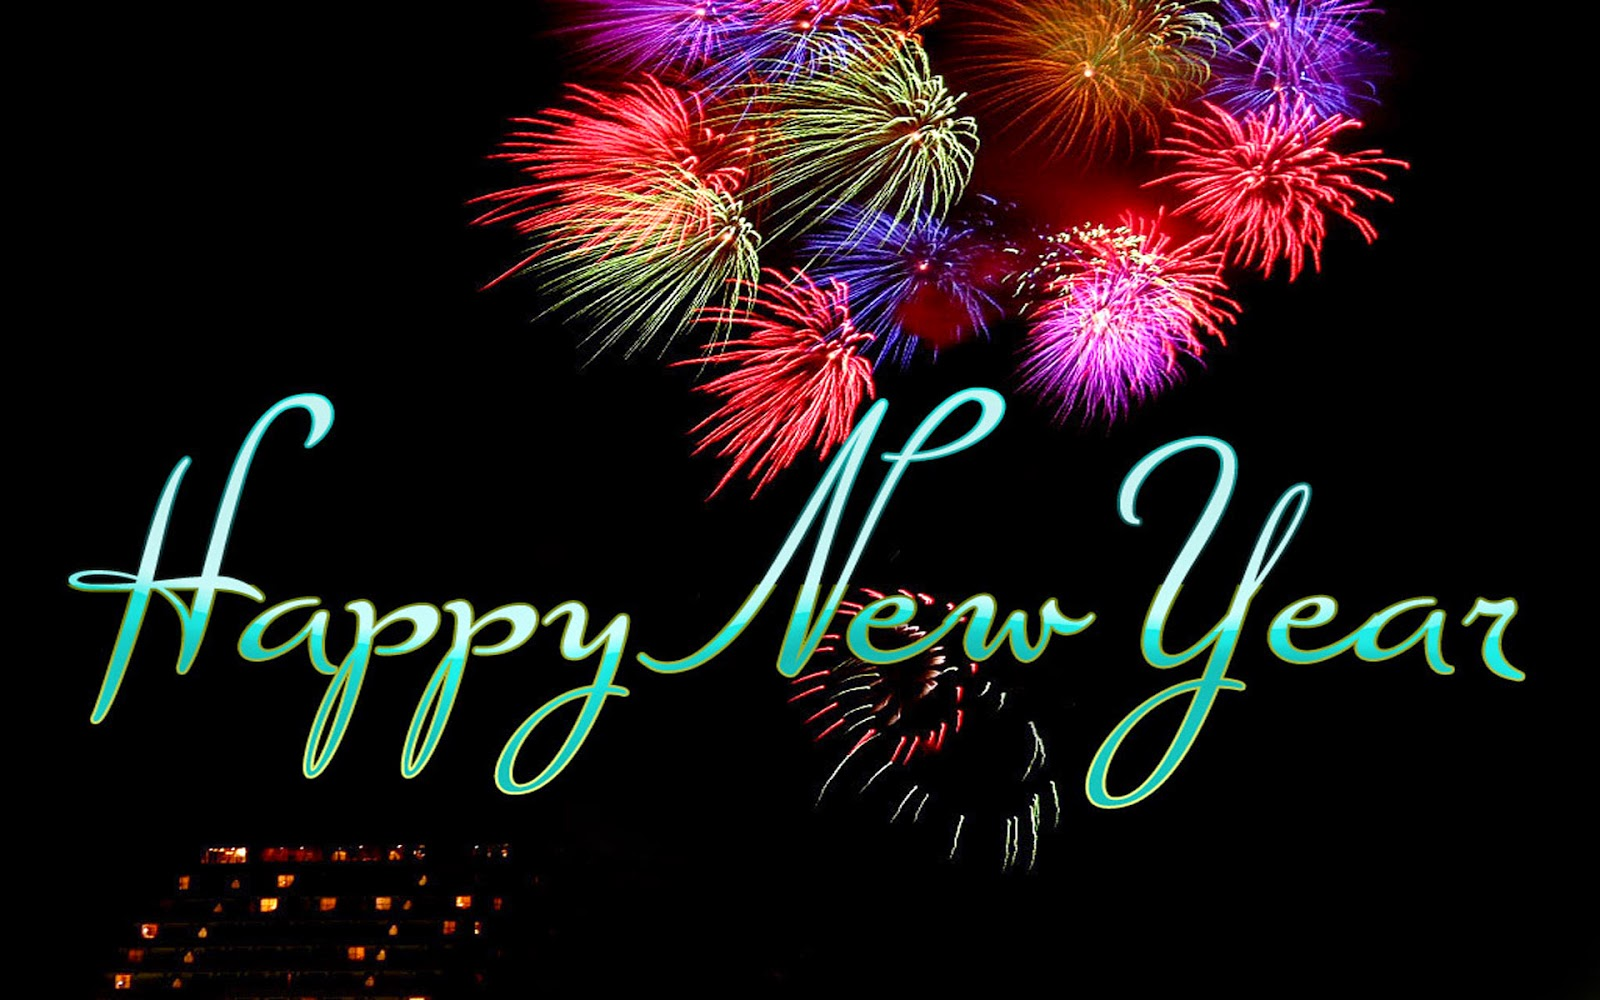 Manigong Bagong Taon 2015, HAPPY NEW YEAR 2015, new year, 2015, new year message, happy new year messages, new year quotes, new year text quotes, New year image, new year logo, New year